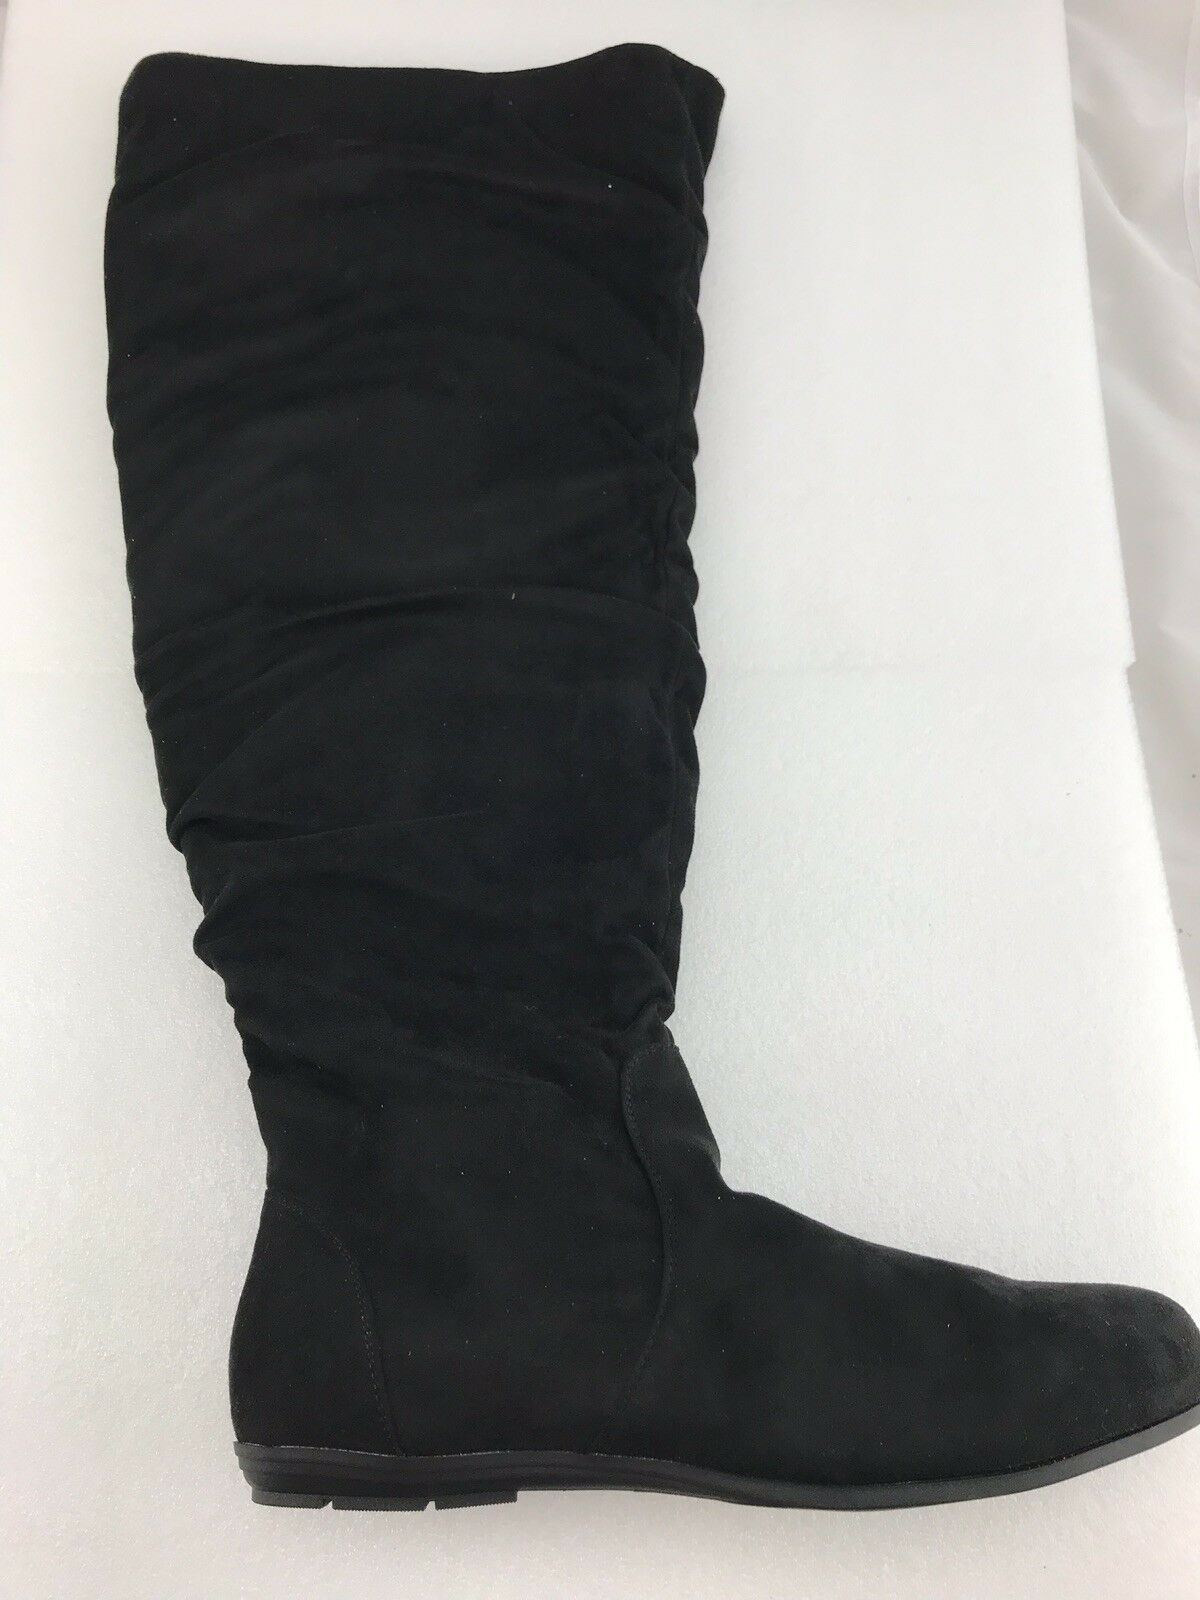 Torrid Black Faux Suede Shearling Flat Knee High Boots 11.5 Wide Width Wide Calf